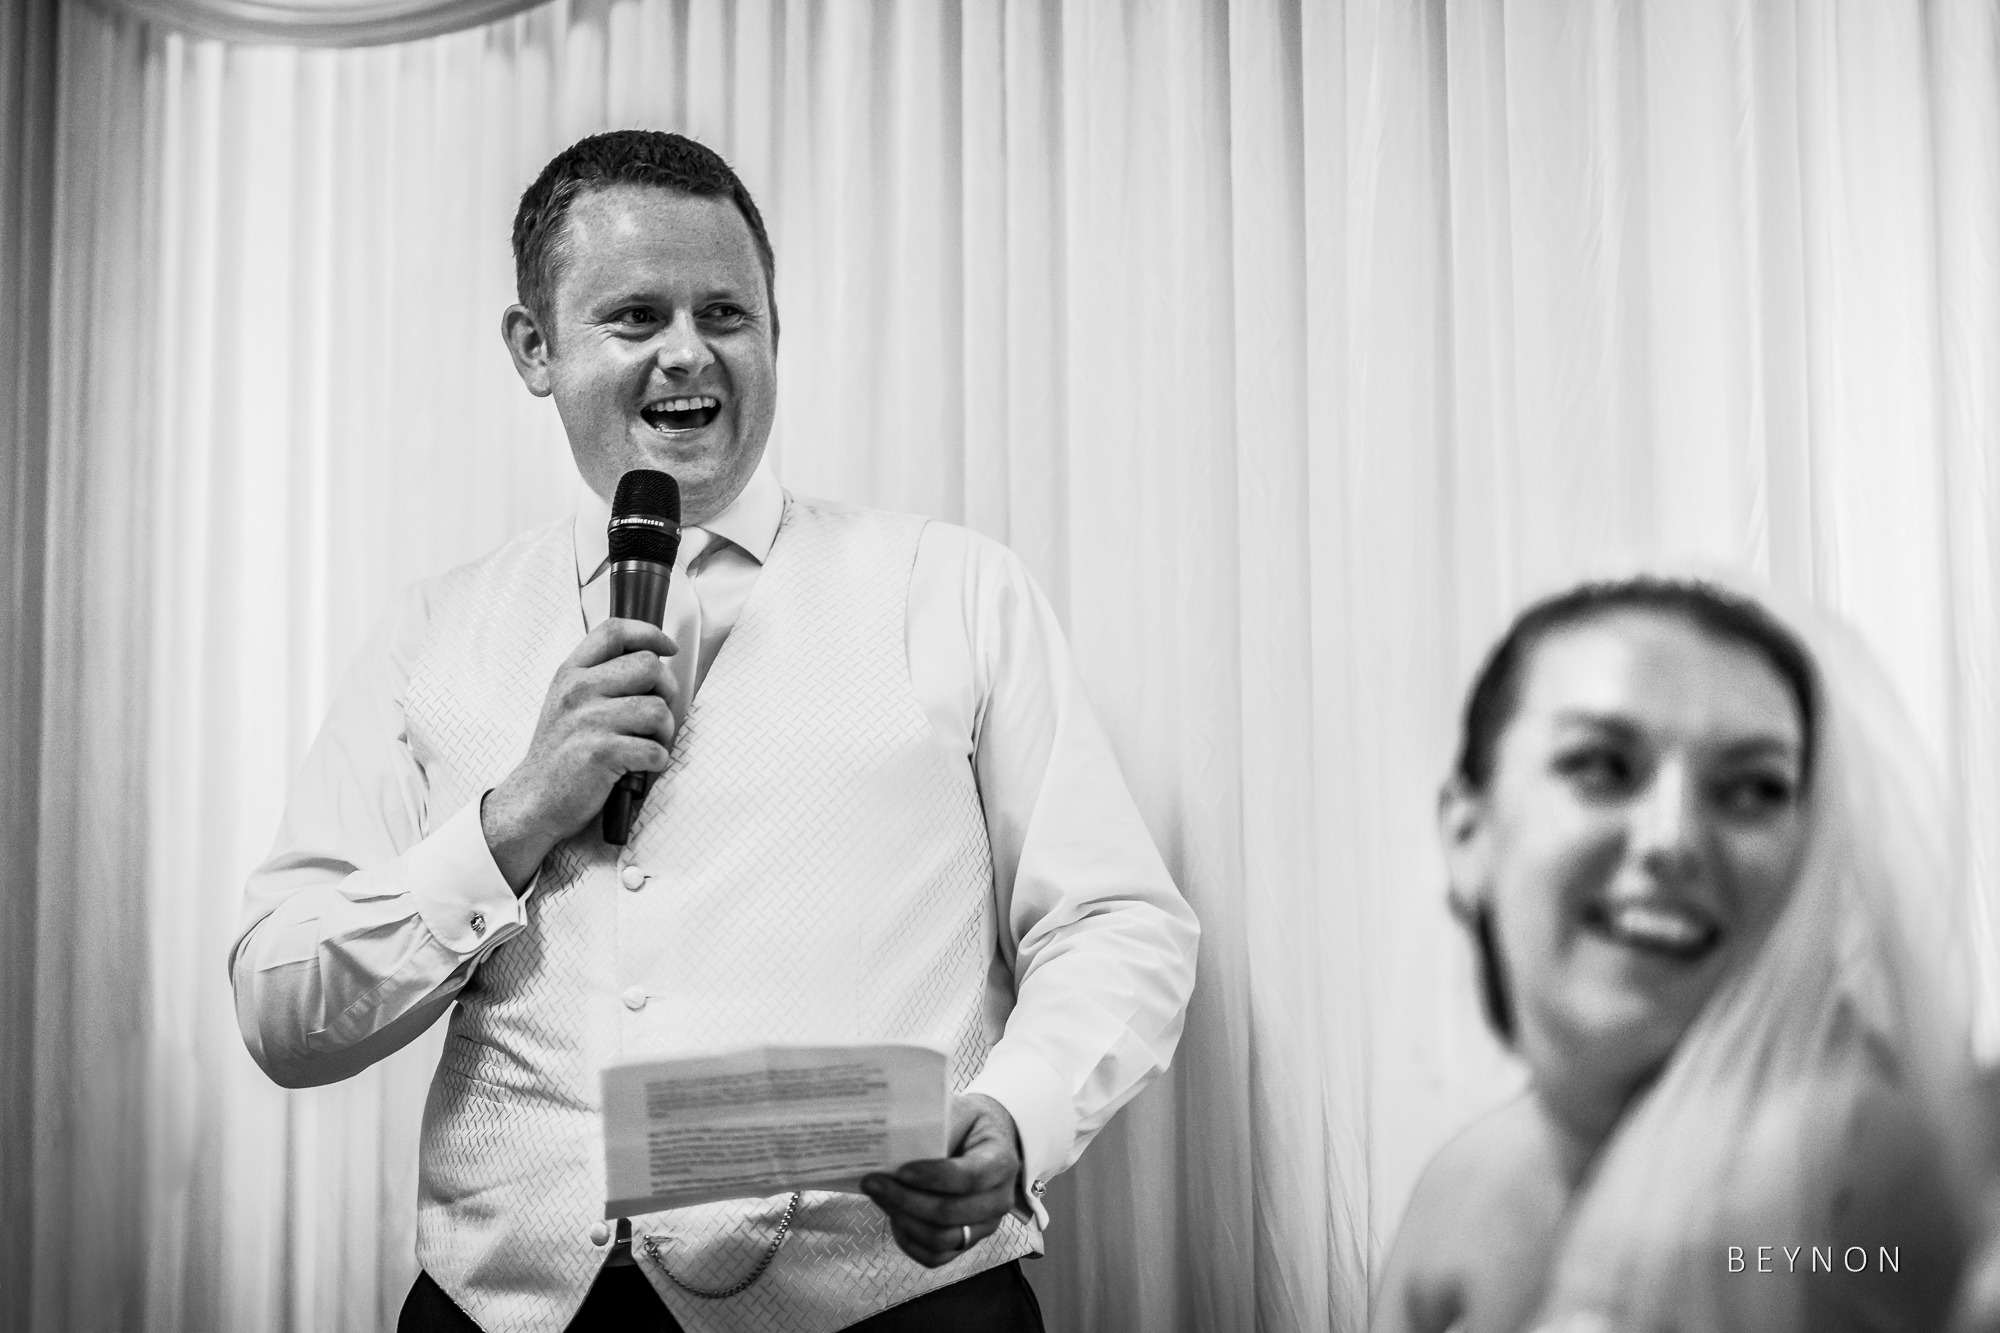 Groom's speech makes bride smile